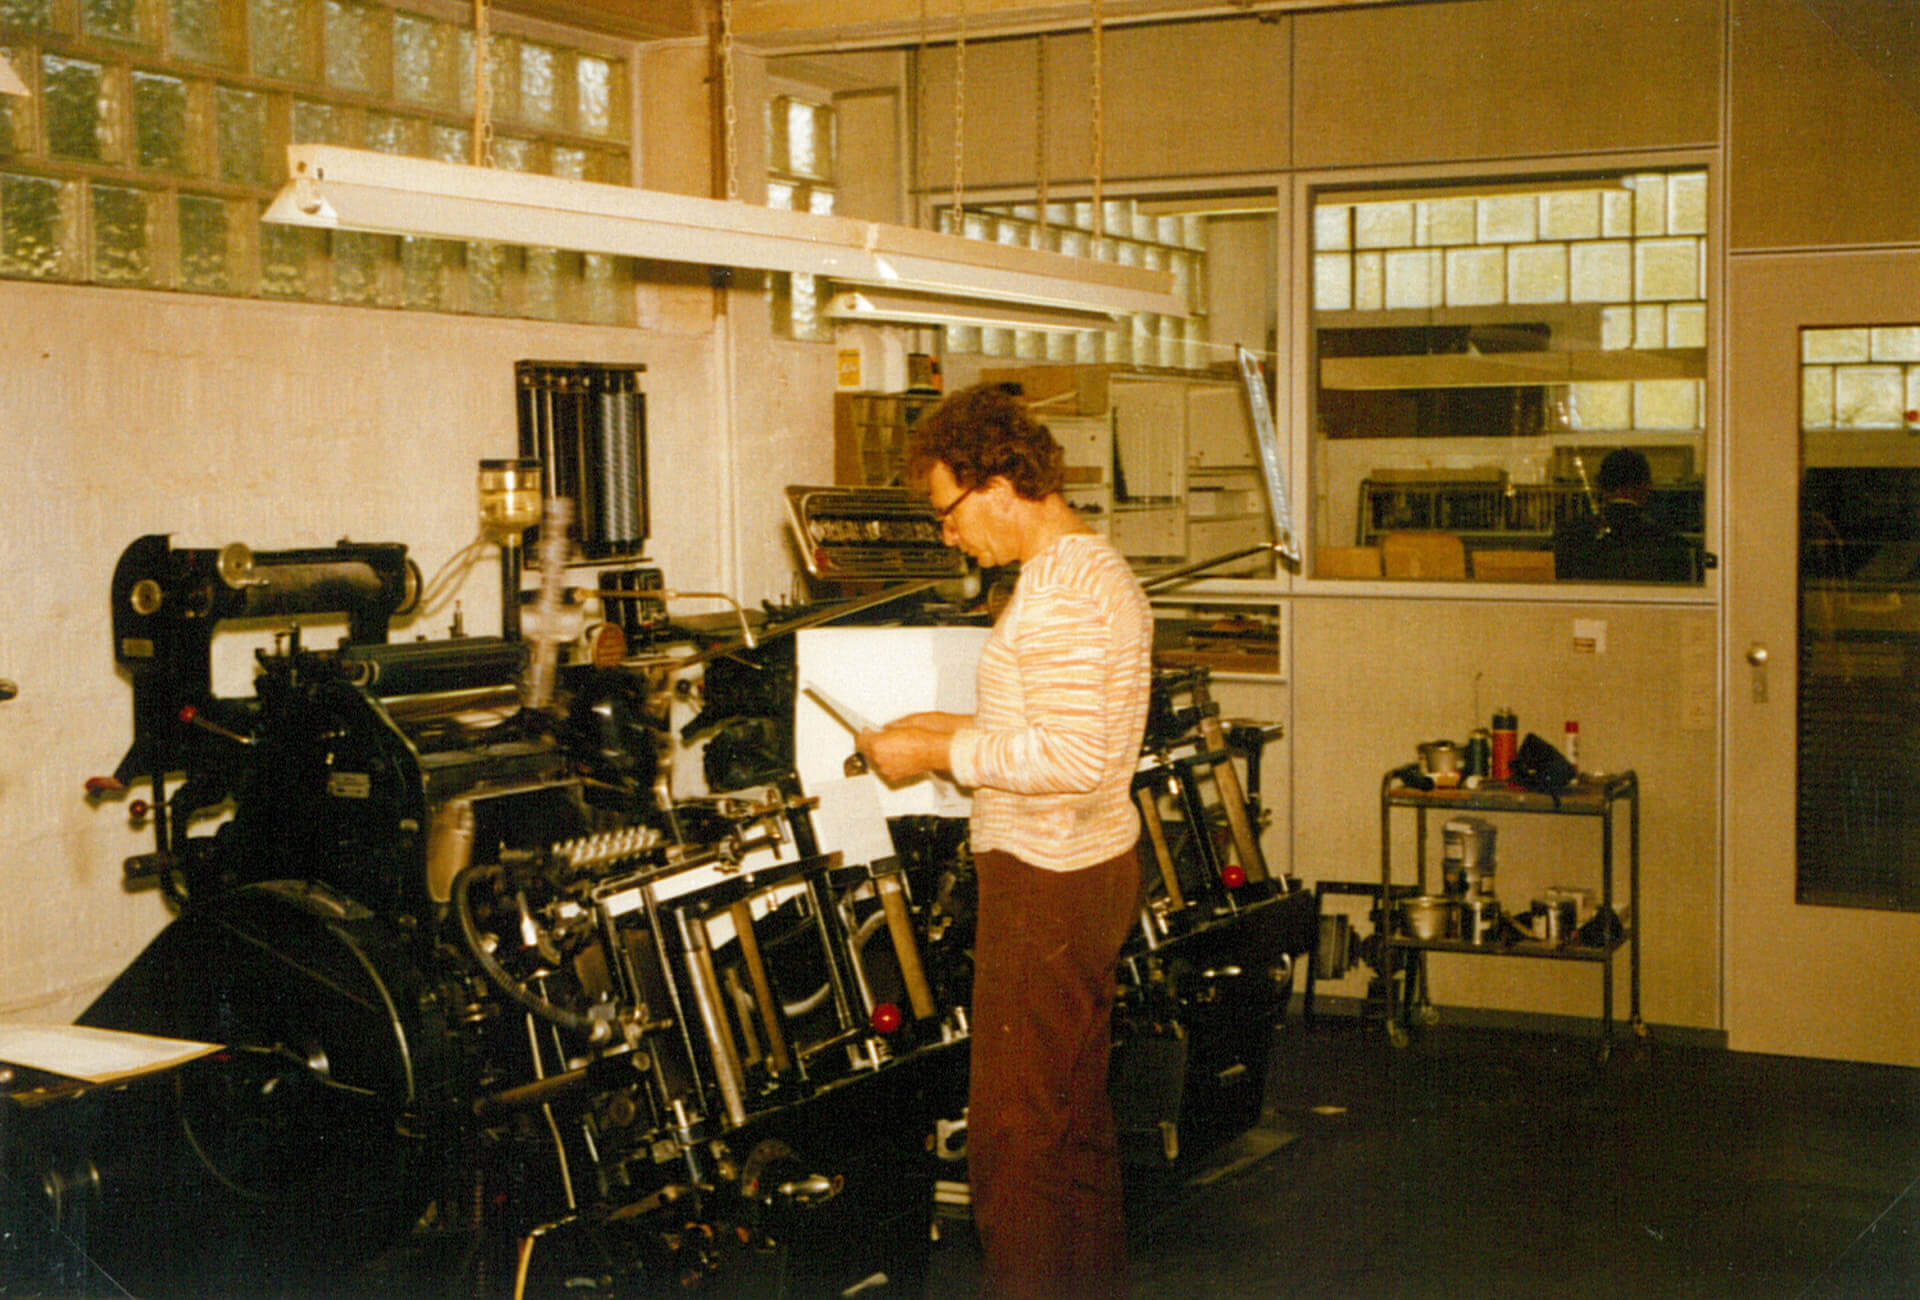 Letterpress department at Bölling, 1980